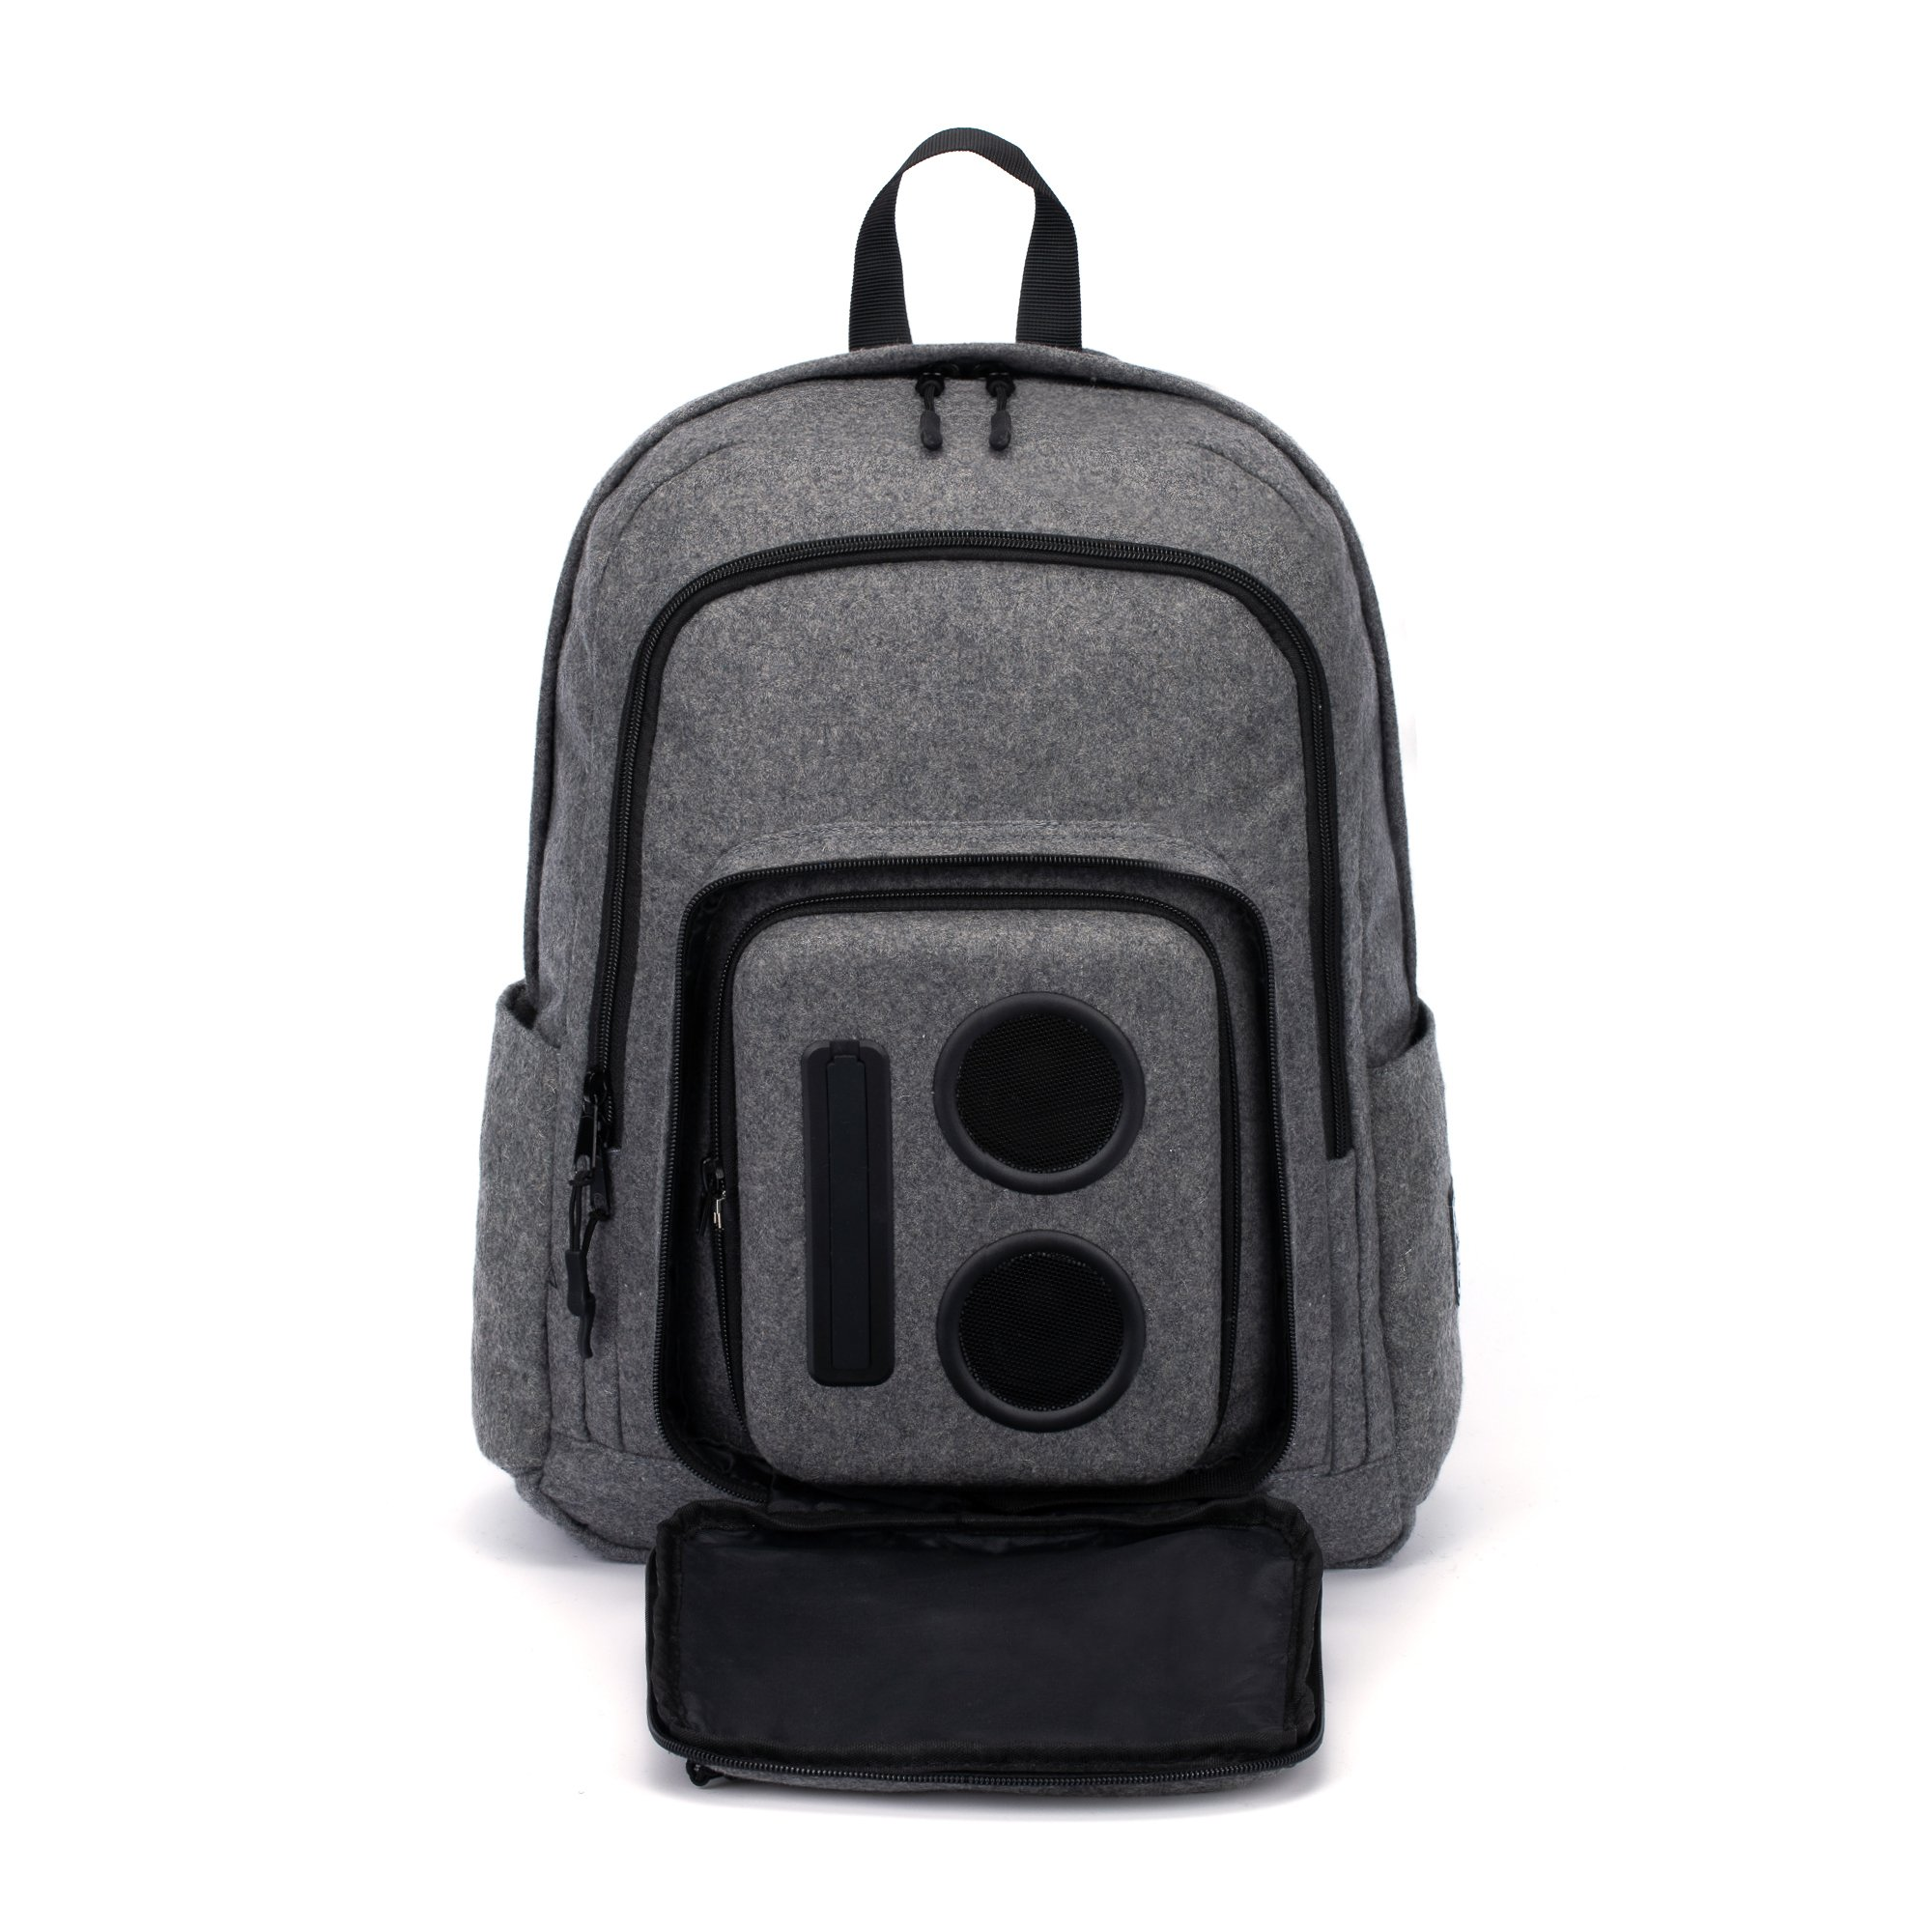 Bluetooth Speaker Backpack with 20-Watt Speakers and Sub